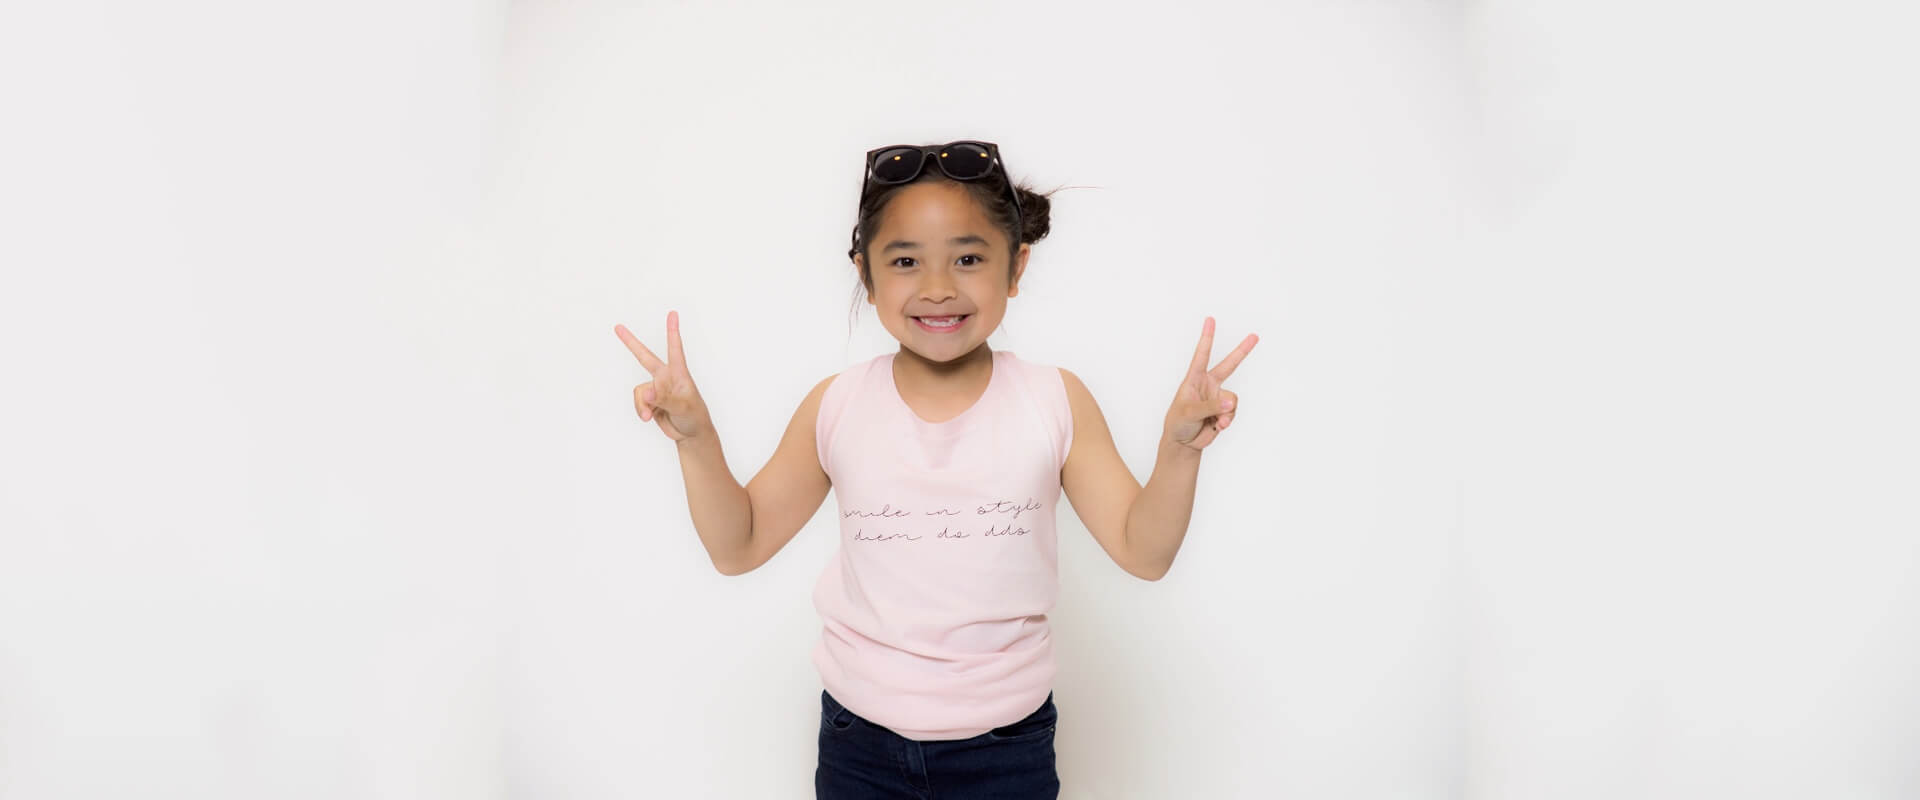 Dr. Diem Do's daughter smiling with hand gestures